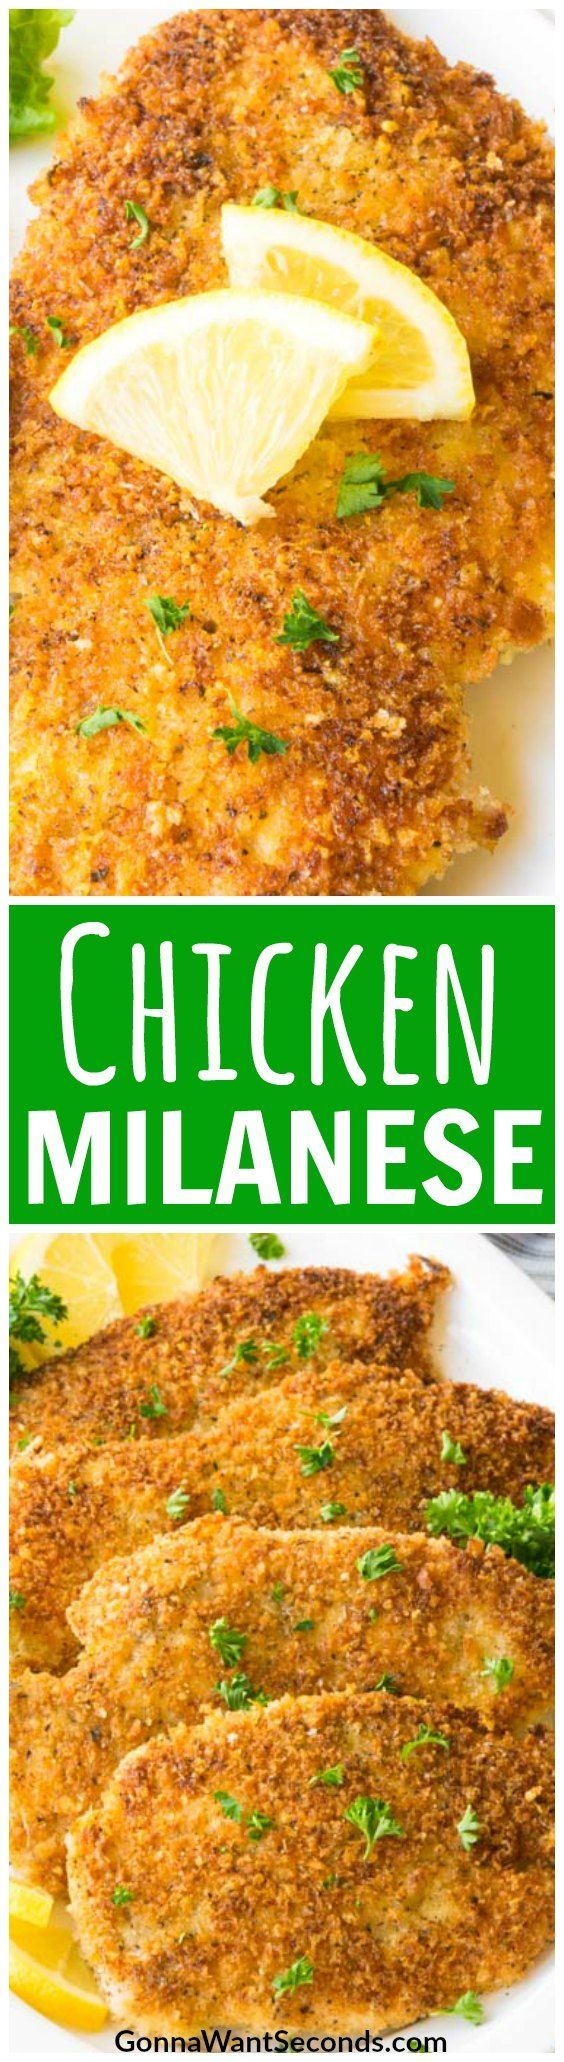 Our classic Chicken Milanese recipe makes an easy Italian dinner that your family will love. Serve with arugula salad and spaghetti and you'll have a new hit in your meal rotation! #Recipe #WithArugulaSalad #Italian #Pasta #Baked #Easy #Best #Chicken #Milanese #Panko #BreadCrumbs #Cooking #Dinner #WithLemon #Families #Meals #Dishes #WithCheese